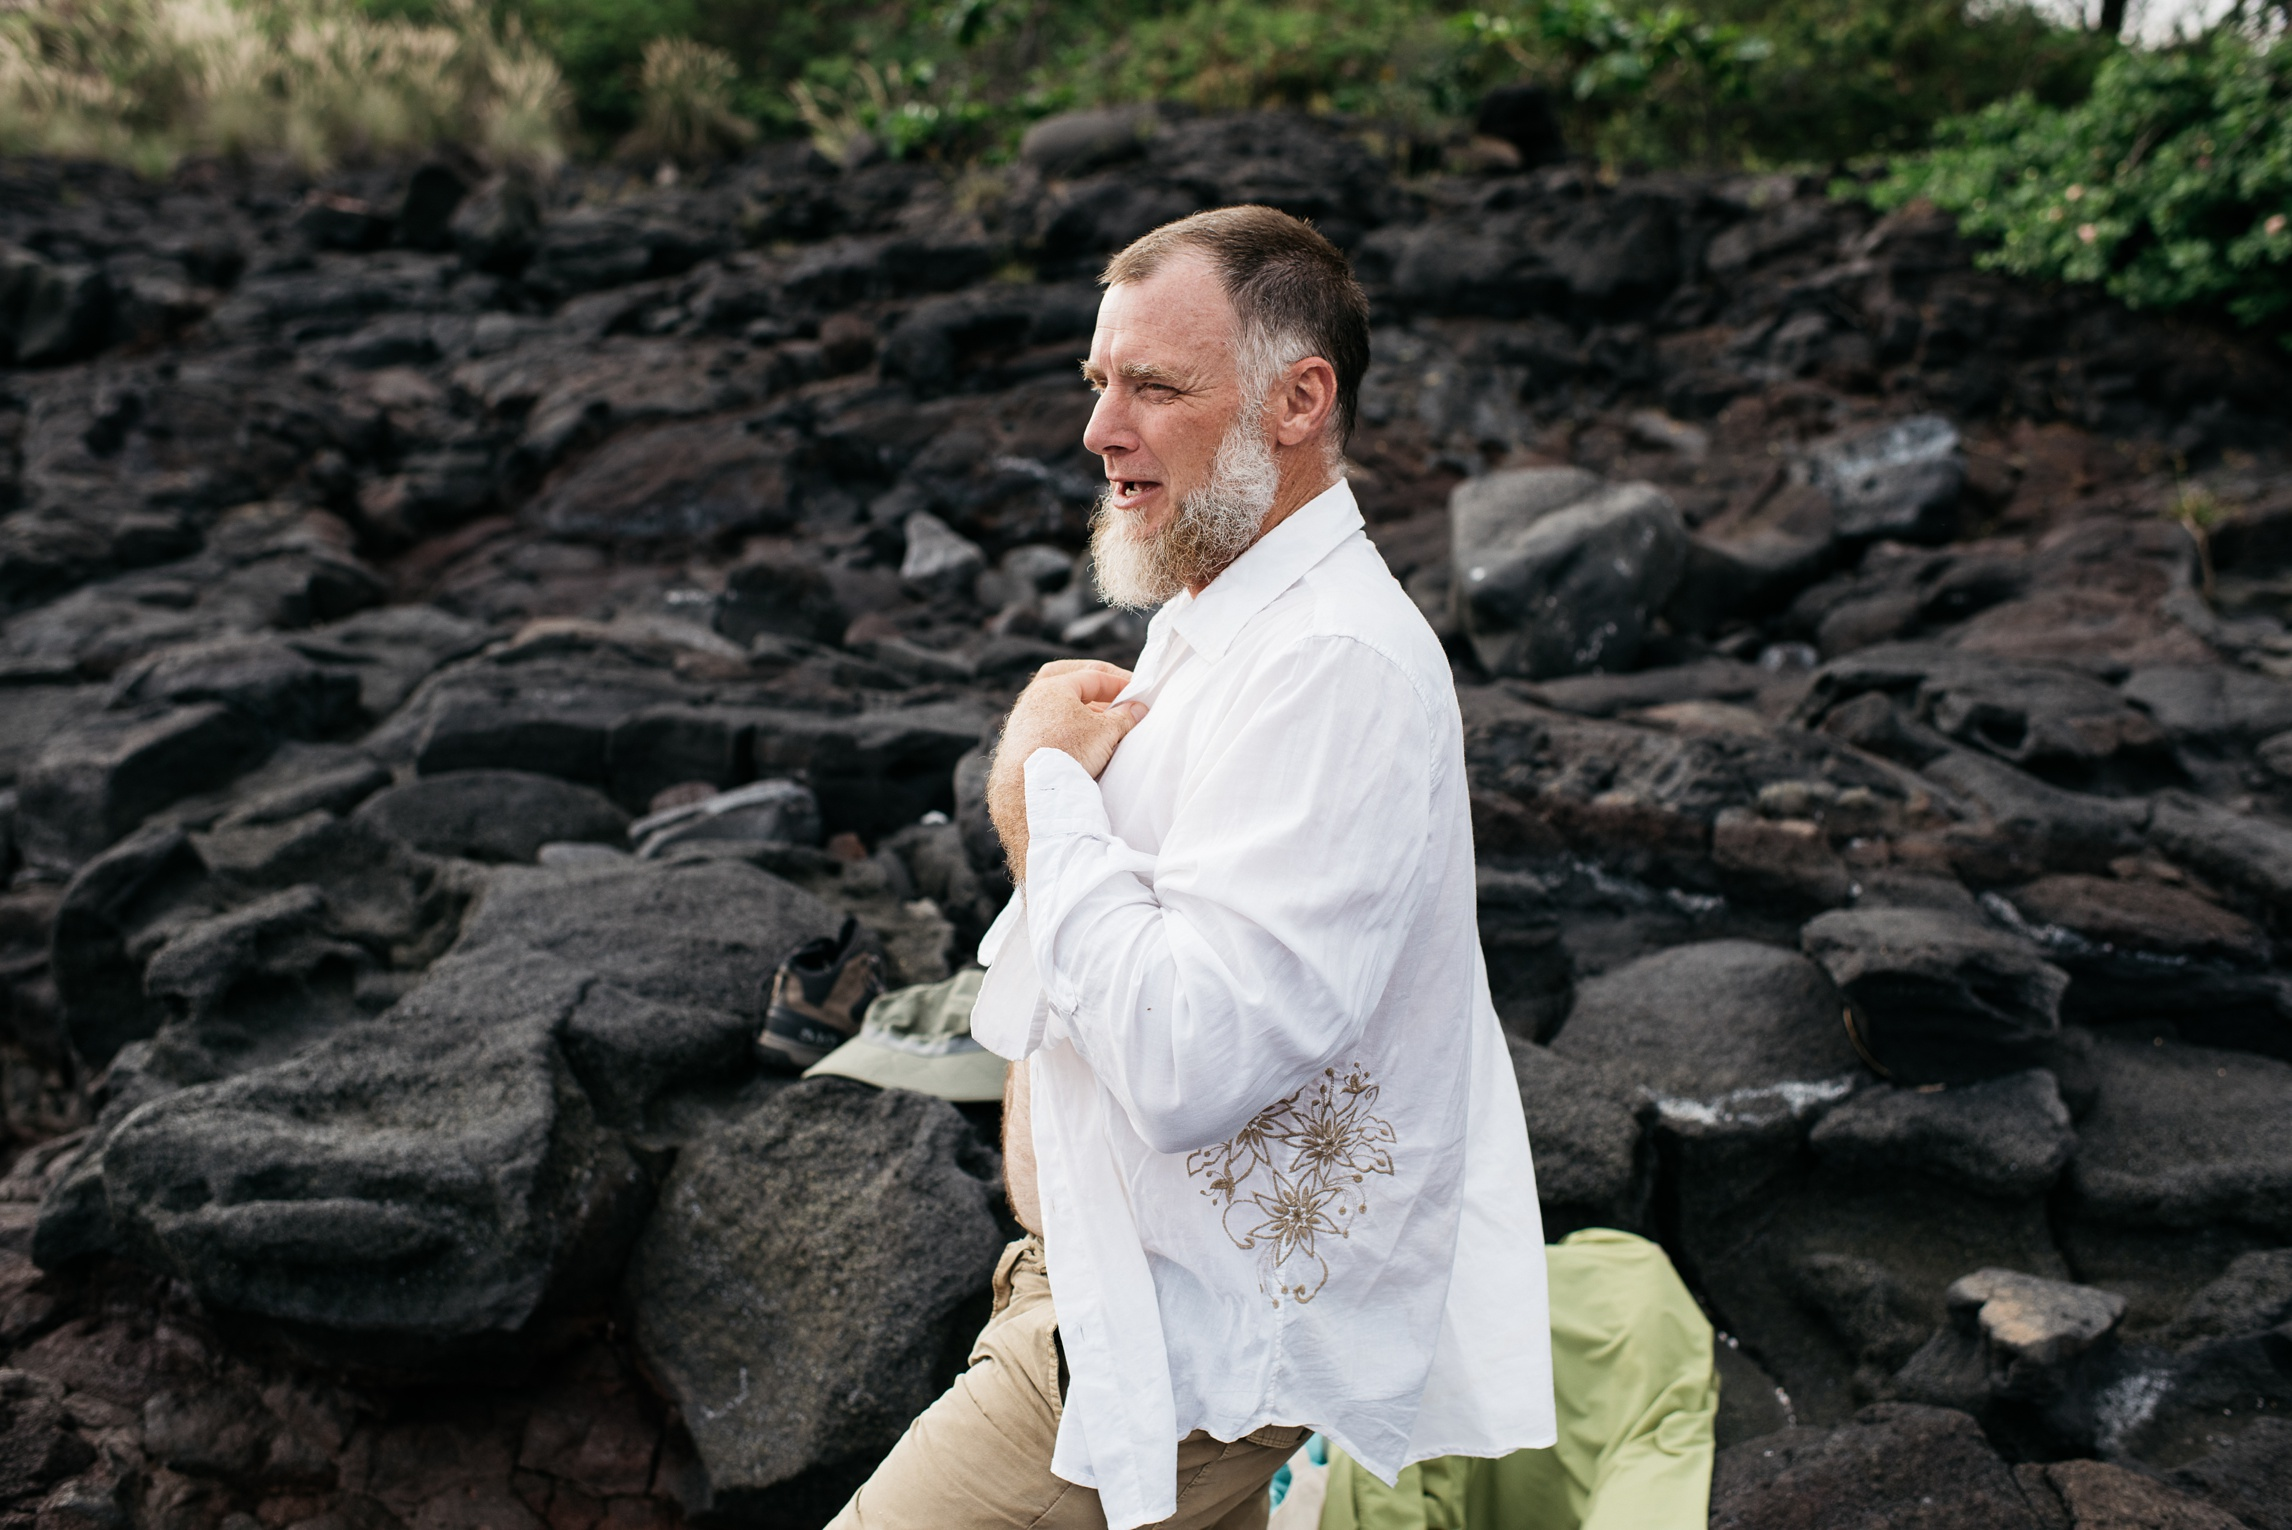 Dan prepares to climb up the lava to a high point above the beach near Naalehu, Hawaii. Anniversary portrait photography by Sonja Salzburg of Sonja K Photography.